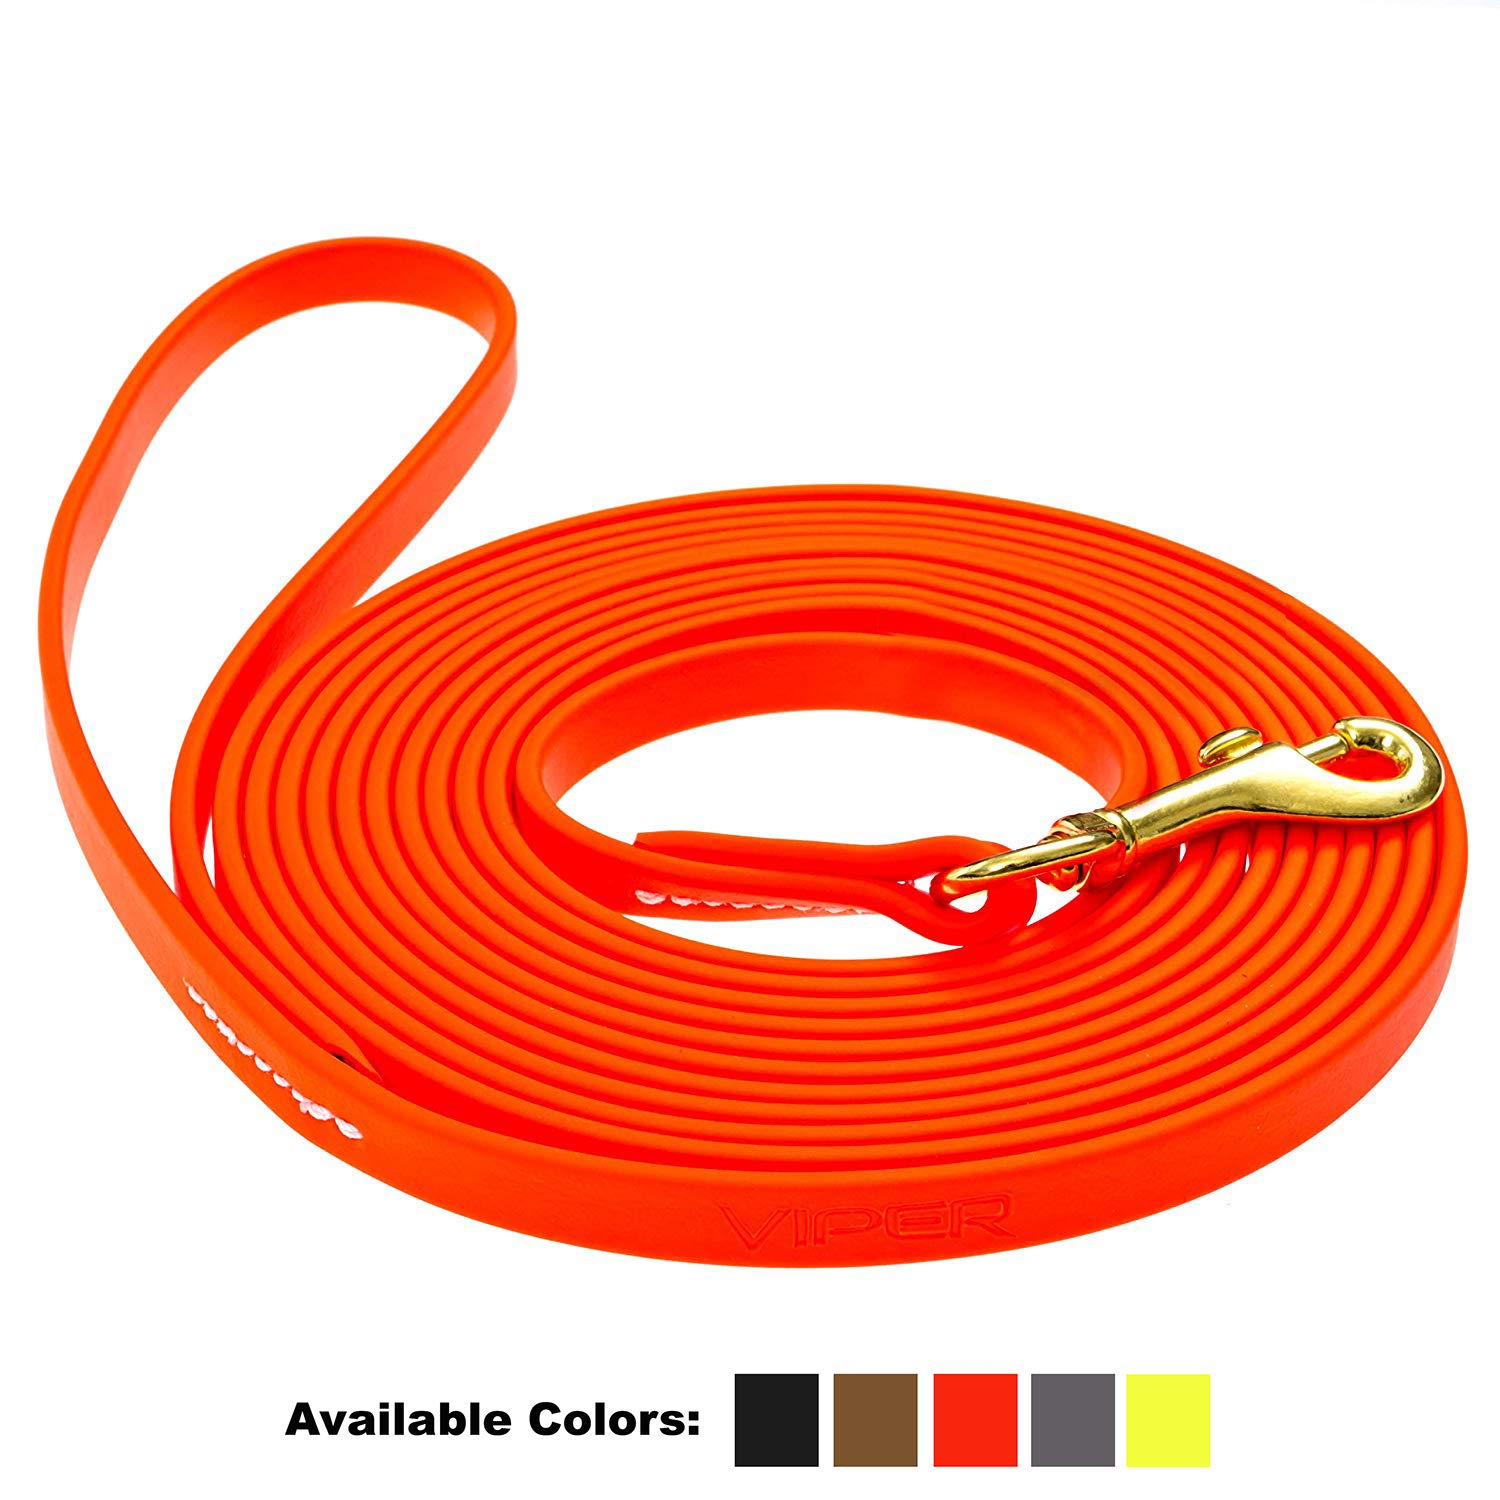 Viper Biothane Working Tracking Lead Leash Long Line for Dogs 2 Colors and 6 Sizes by Viper